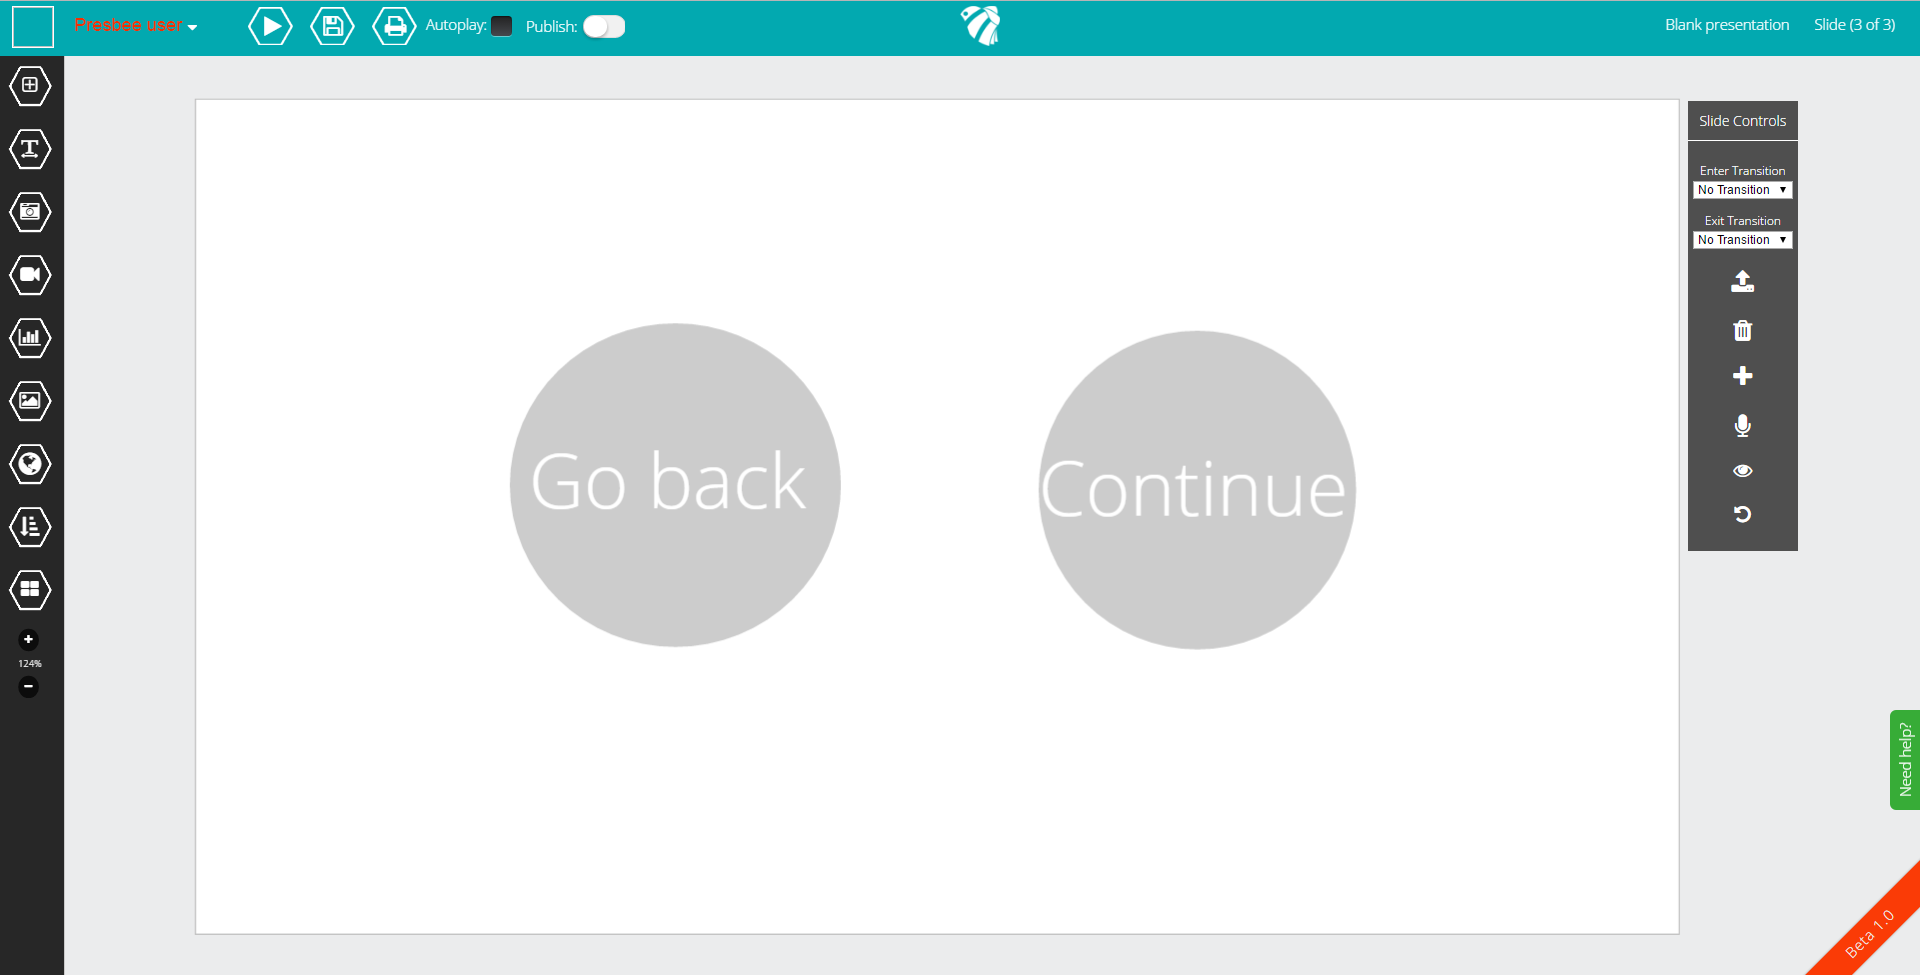 Fully interactive presentations